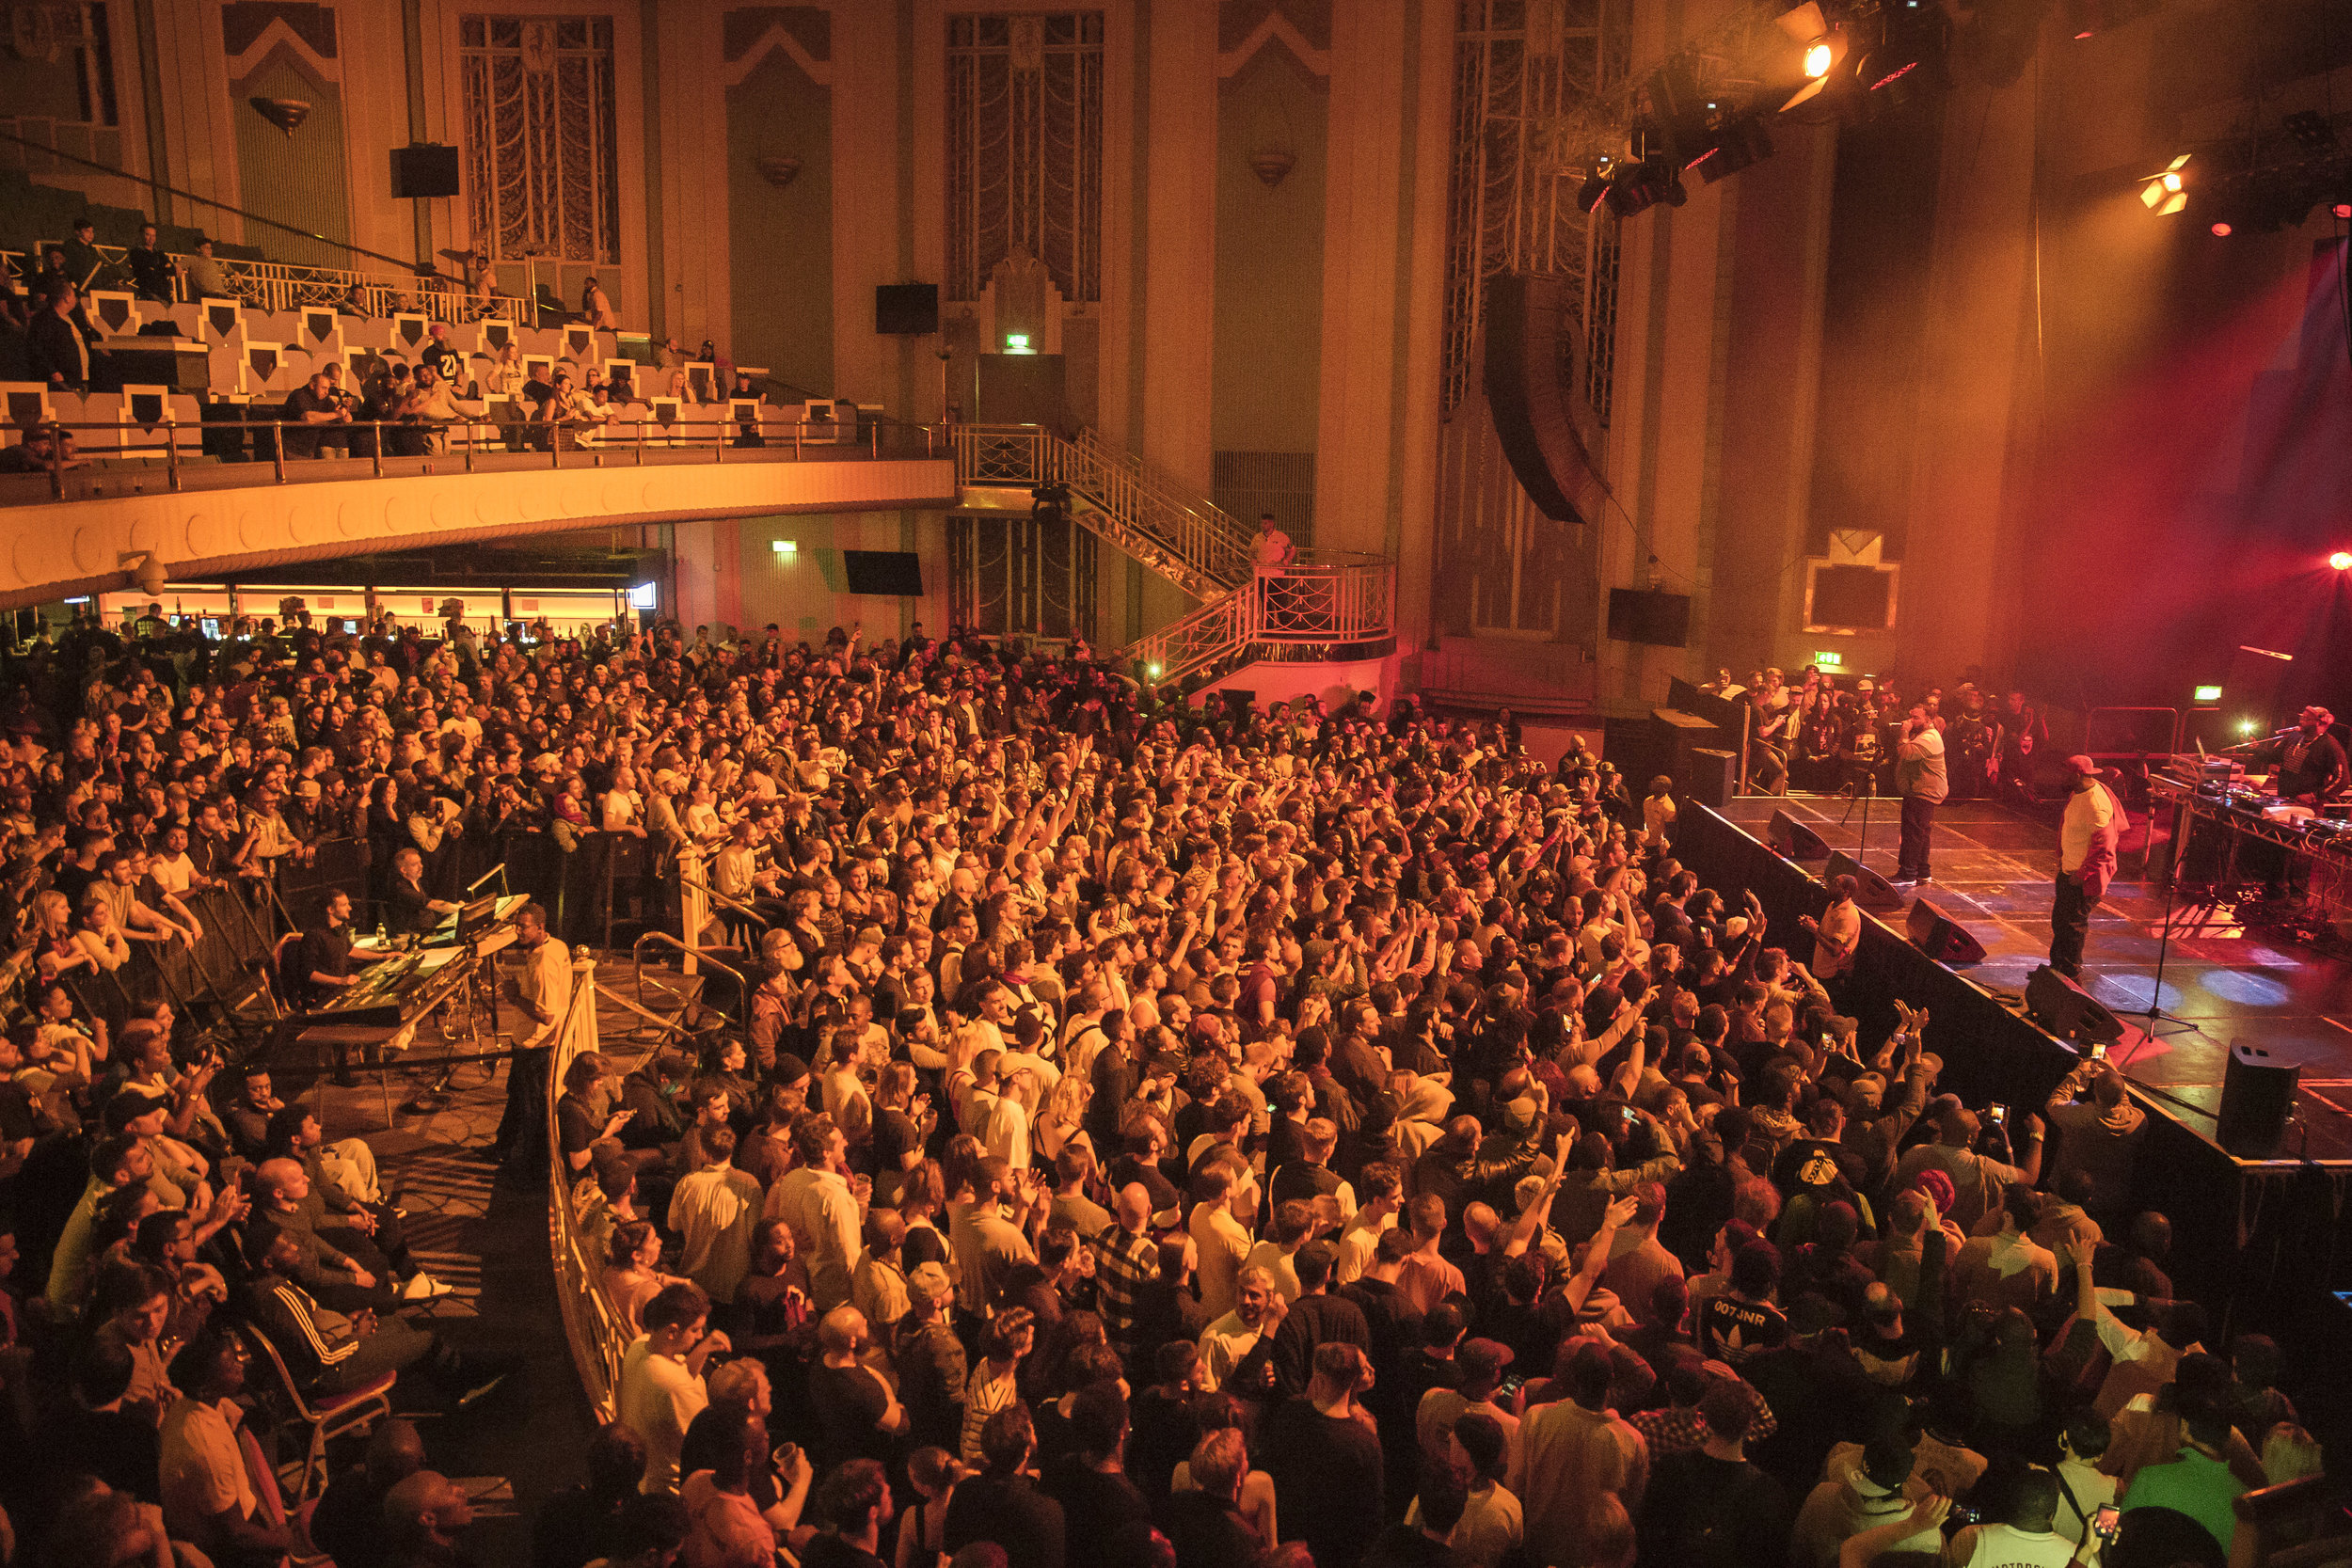 Packed house at the Troxy